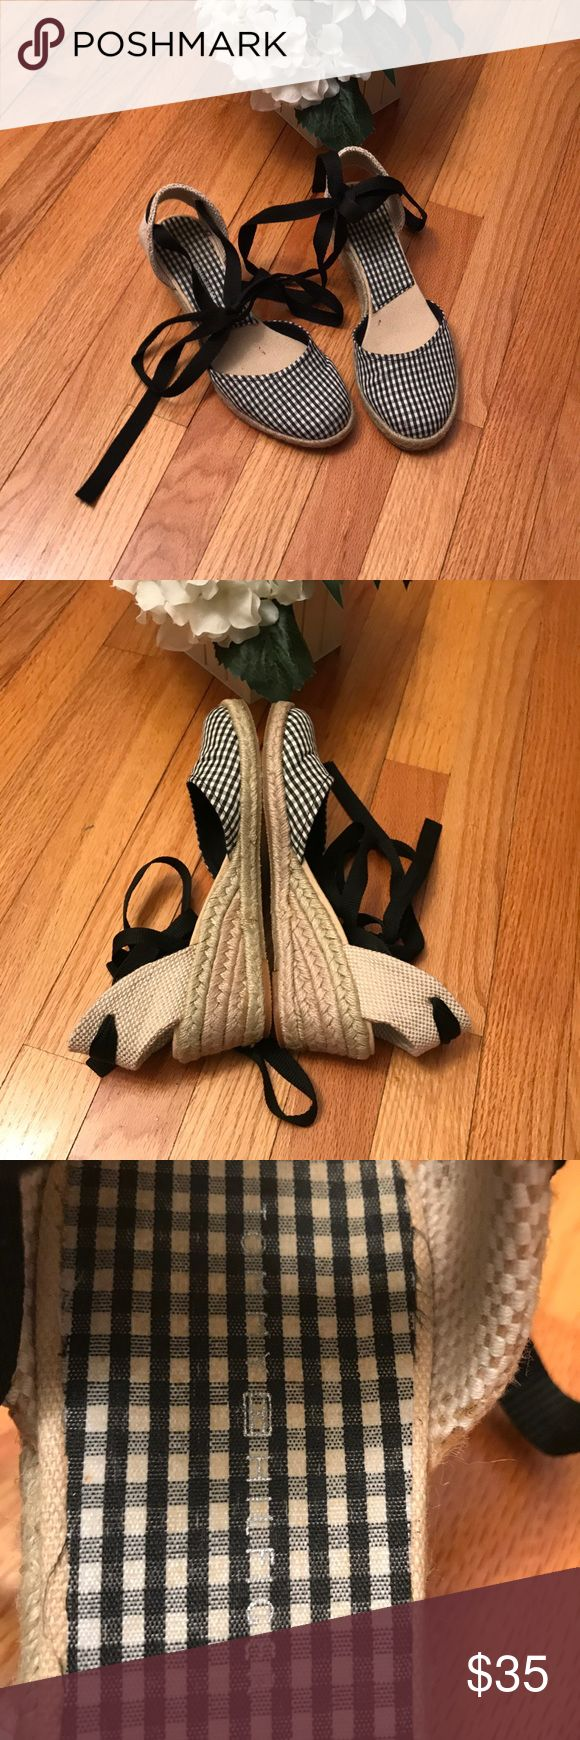 "TOMMY HILFIGER: Ballerina Picnic Wedges! How cute are these?  With wrap straps that can be worn in multiple bow tied styles, wear these with cigarette jeans or a simple white or black dress.  2"" wedge heels and canvas fabric. Tommy Hilfiger Shoes Wedges"